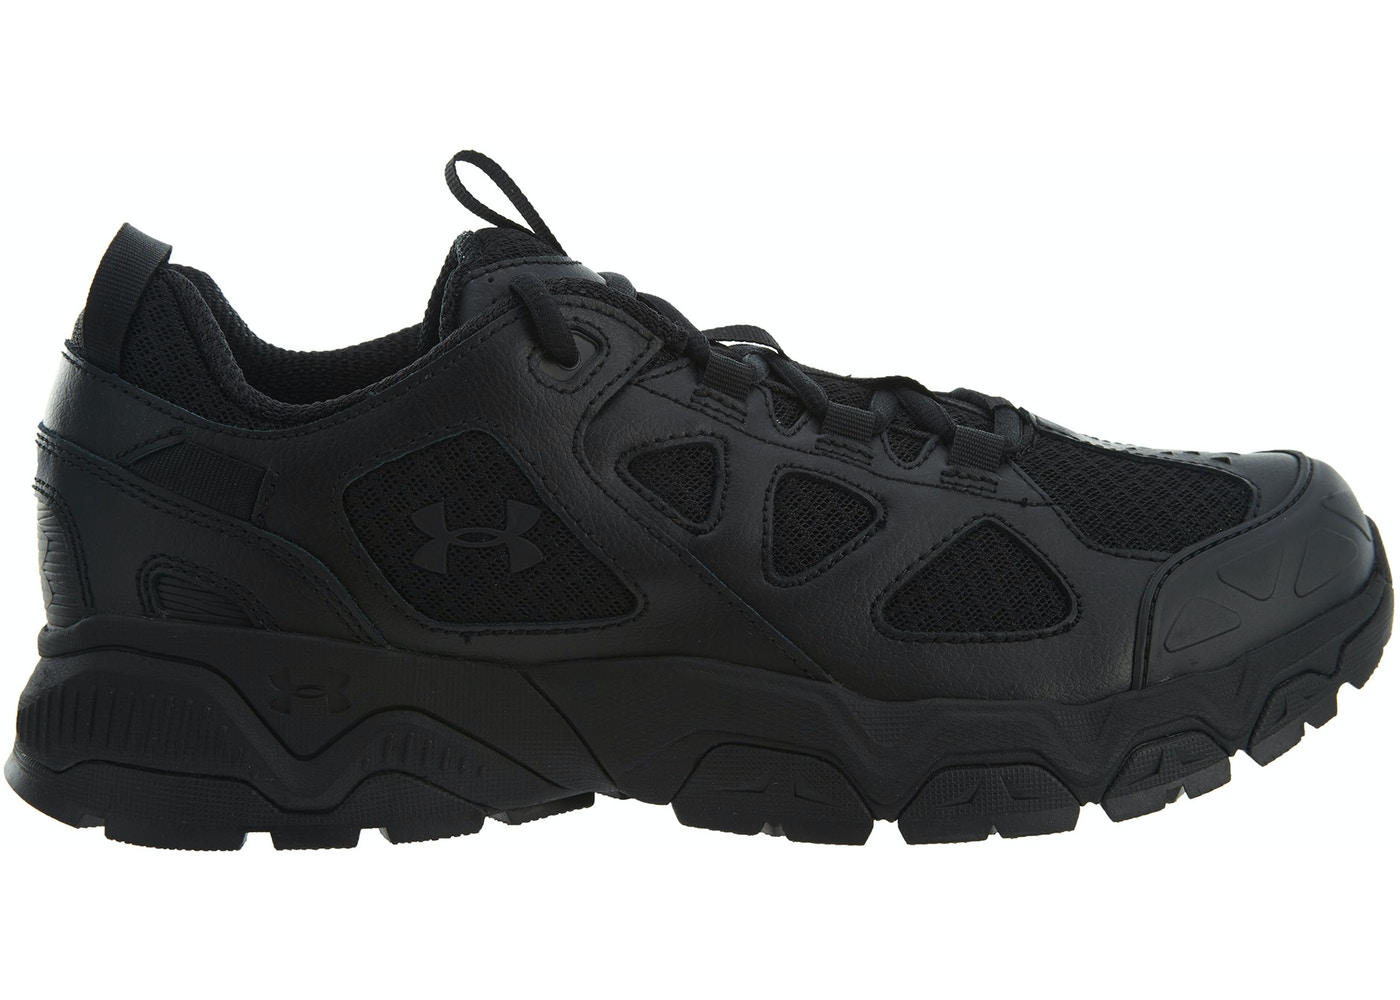 6900a4df Under Armour Mirage 3.0 Black/Black-Black - 1287351-001